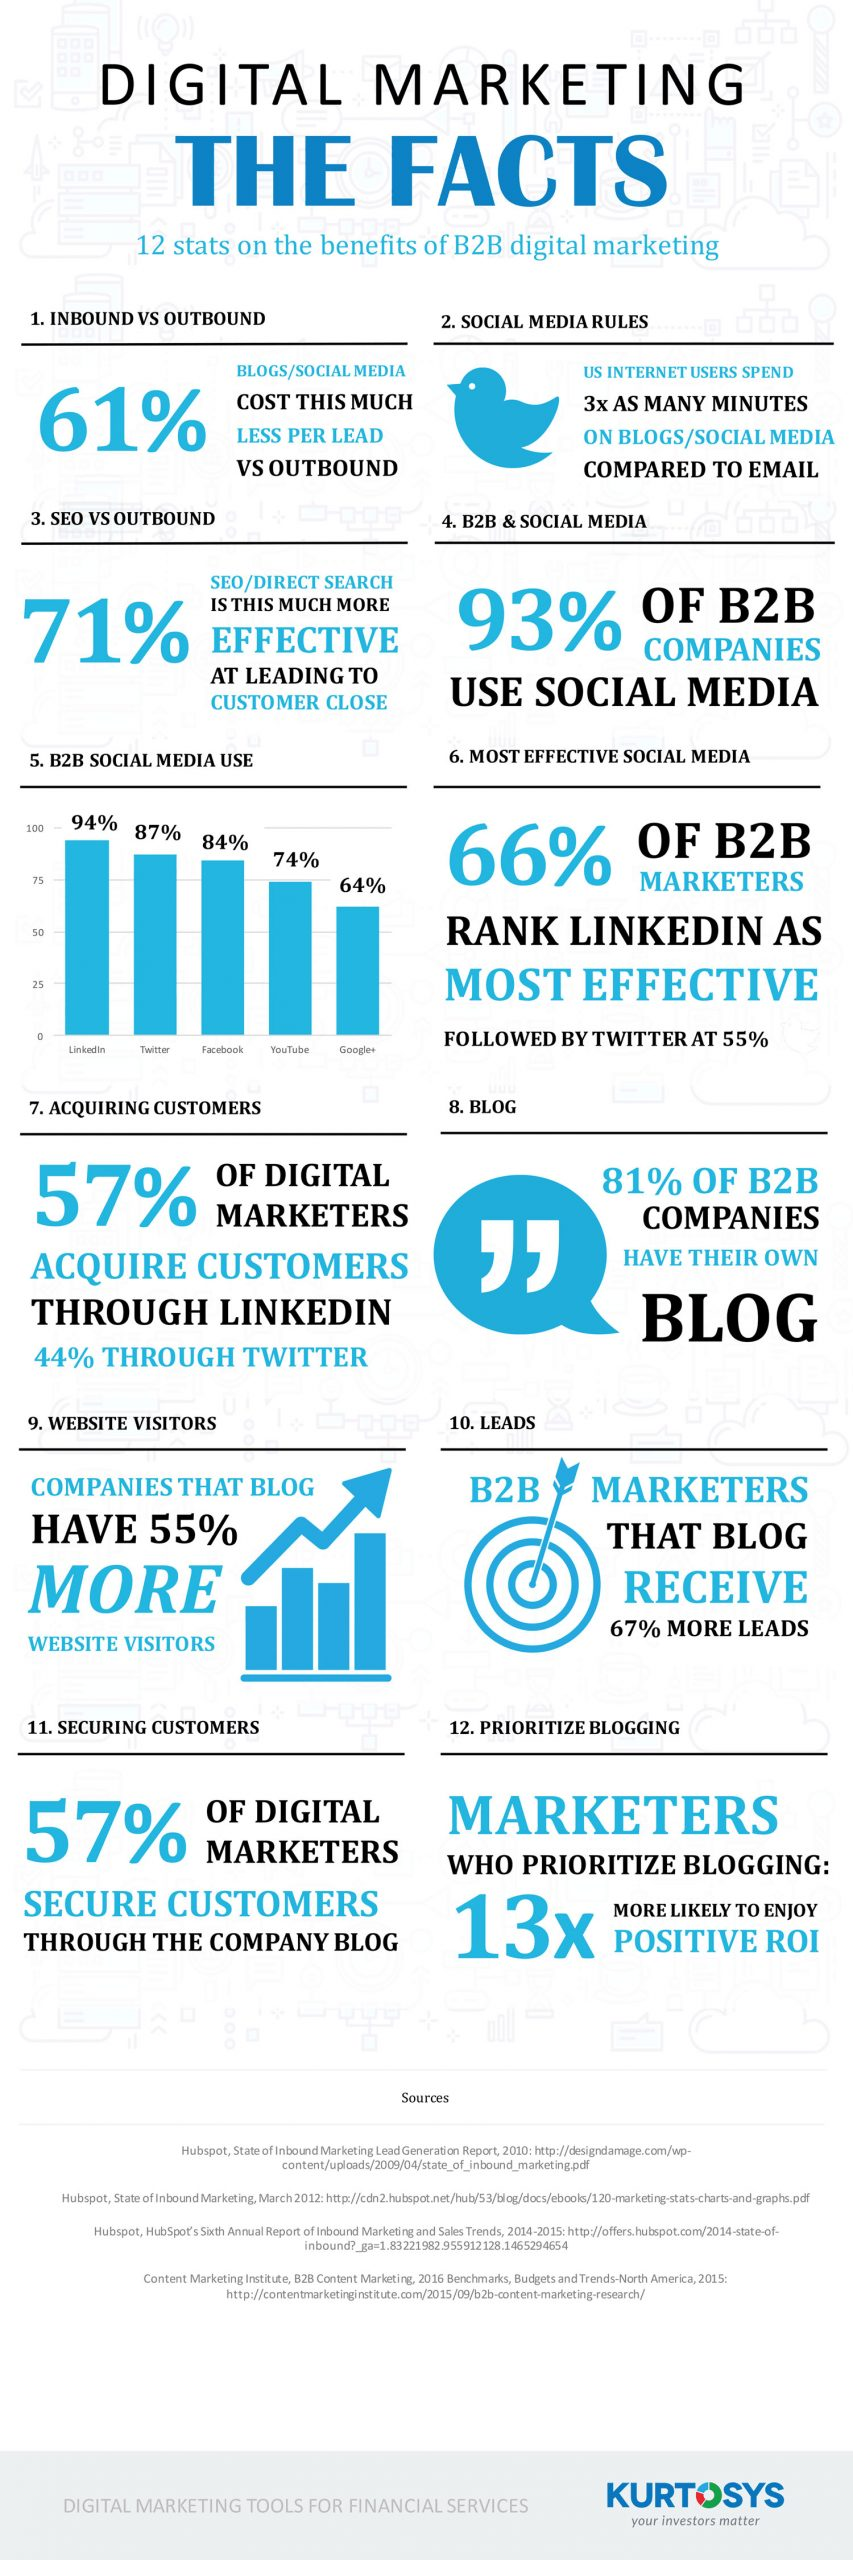 12 Facts About B2B Digital Marketing [INFOGRAPHIC] 1